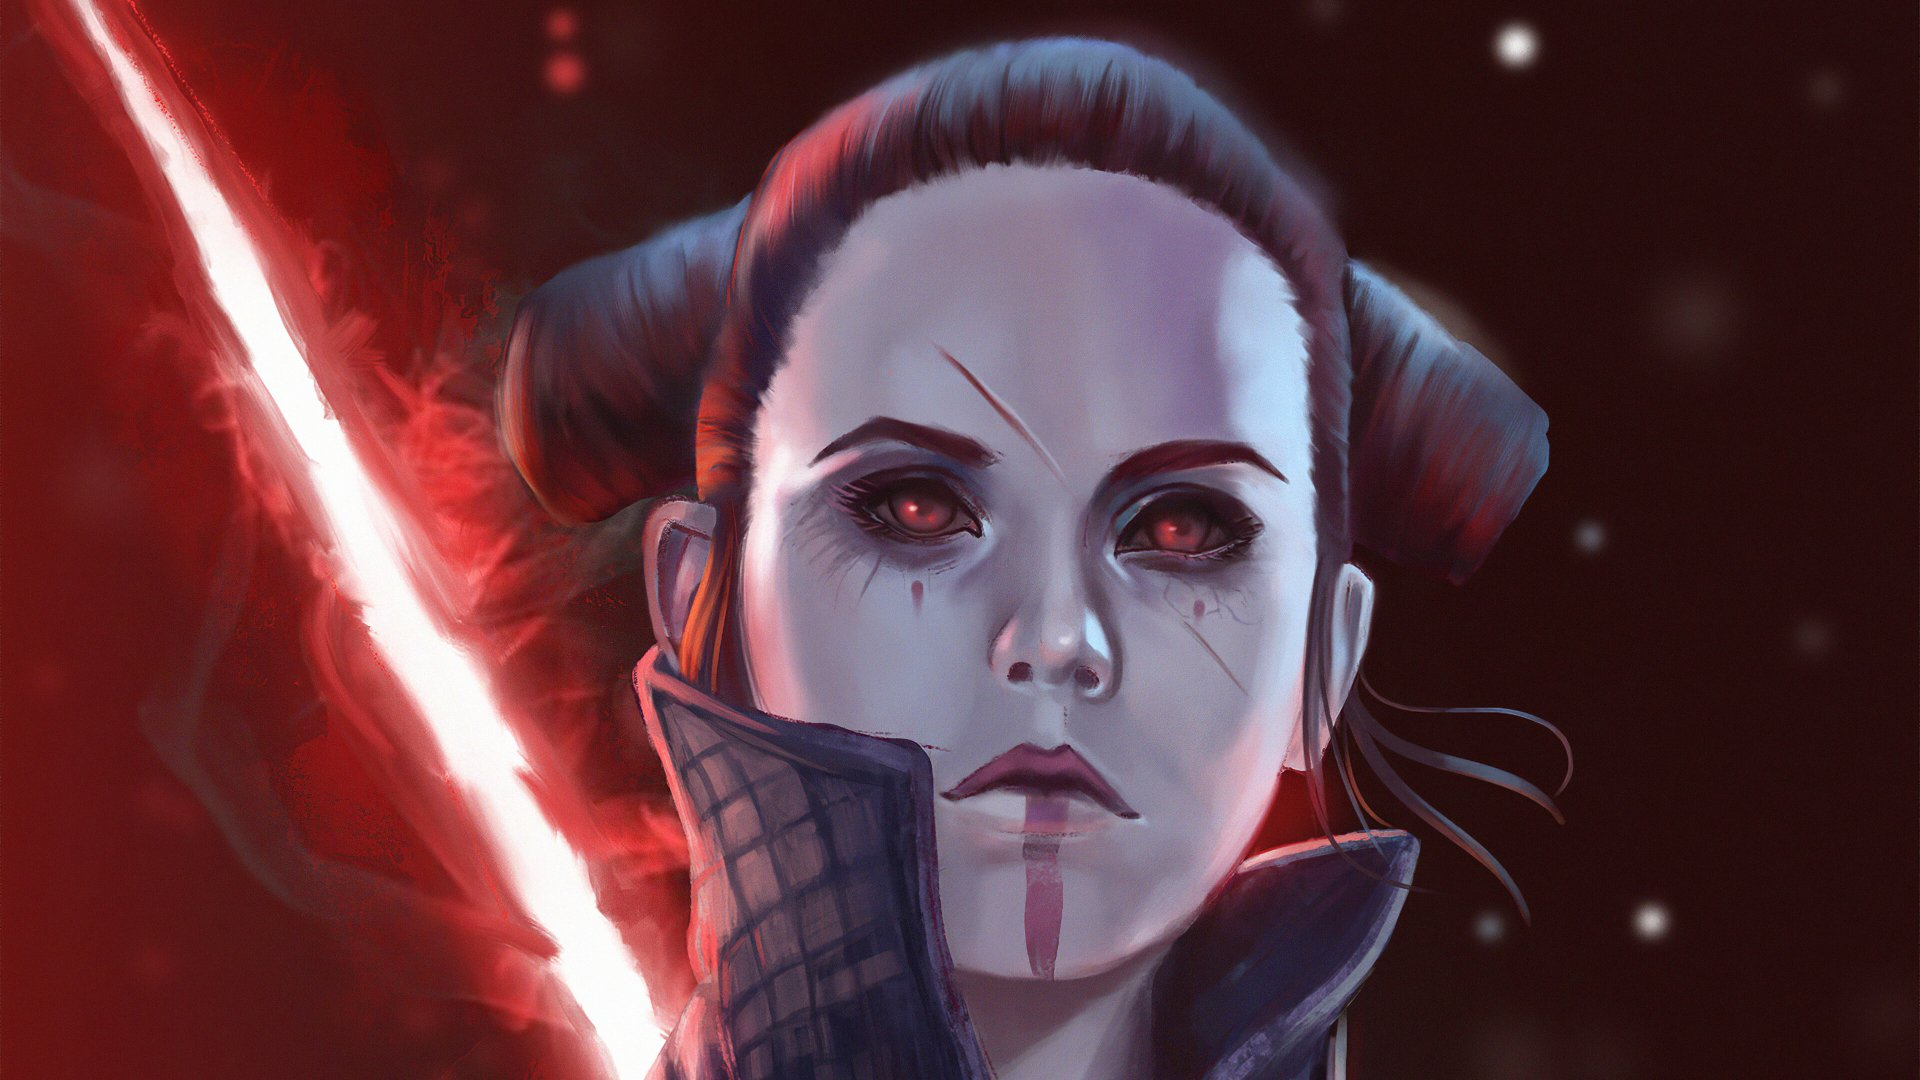 Darth Rey 4k Ultra Hd Wallpaper Background Image 3840x2160